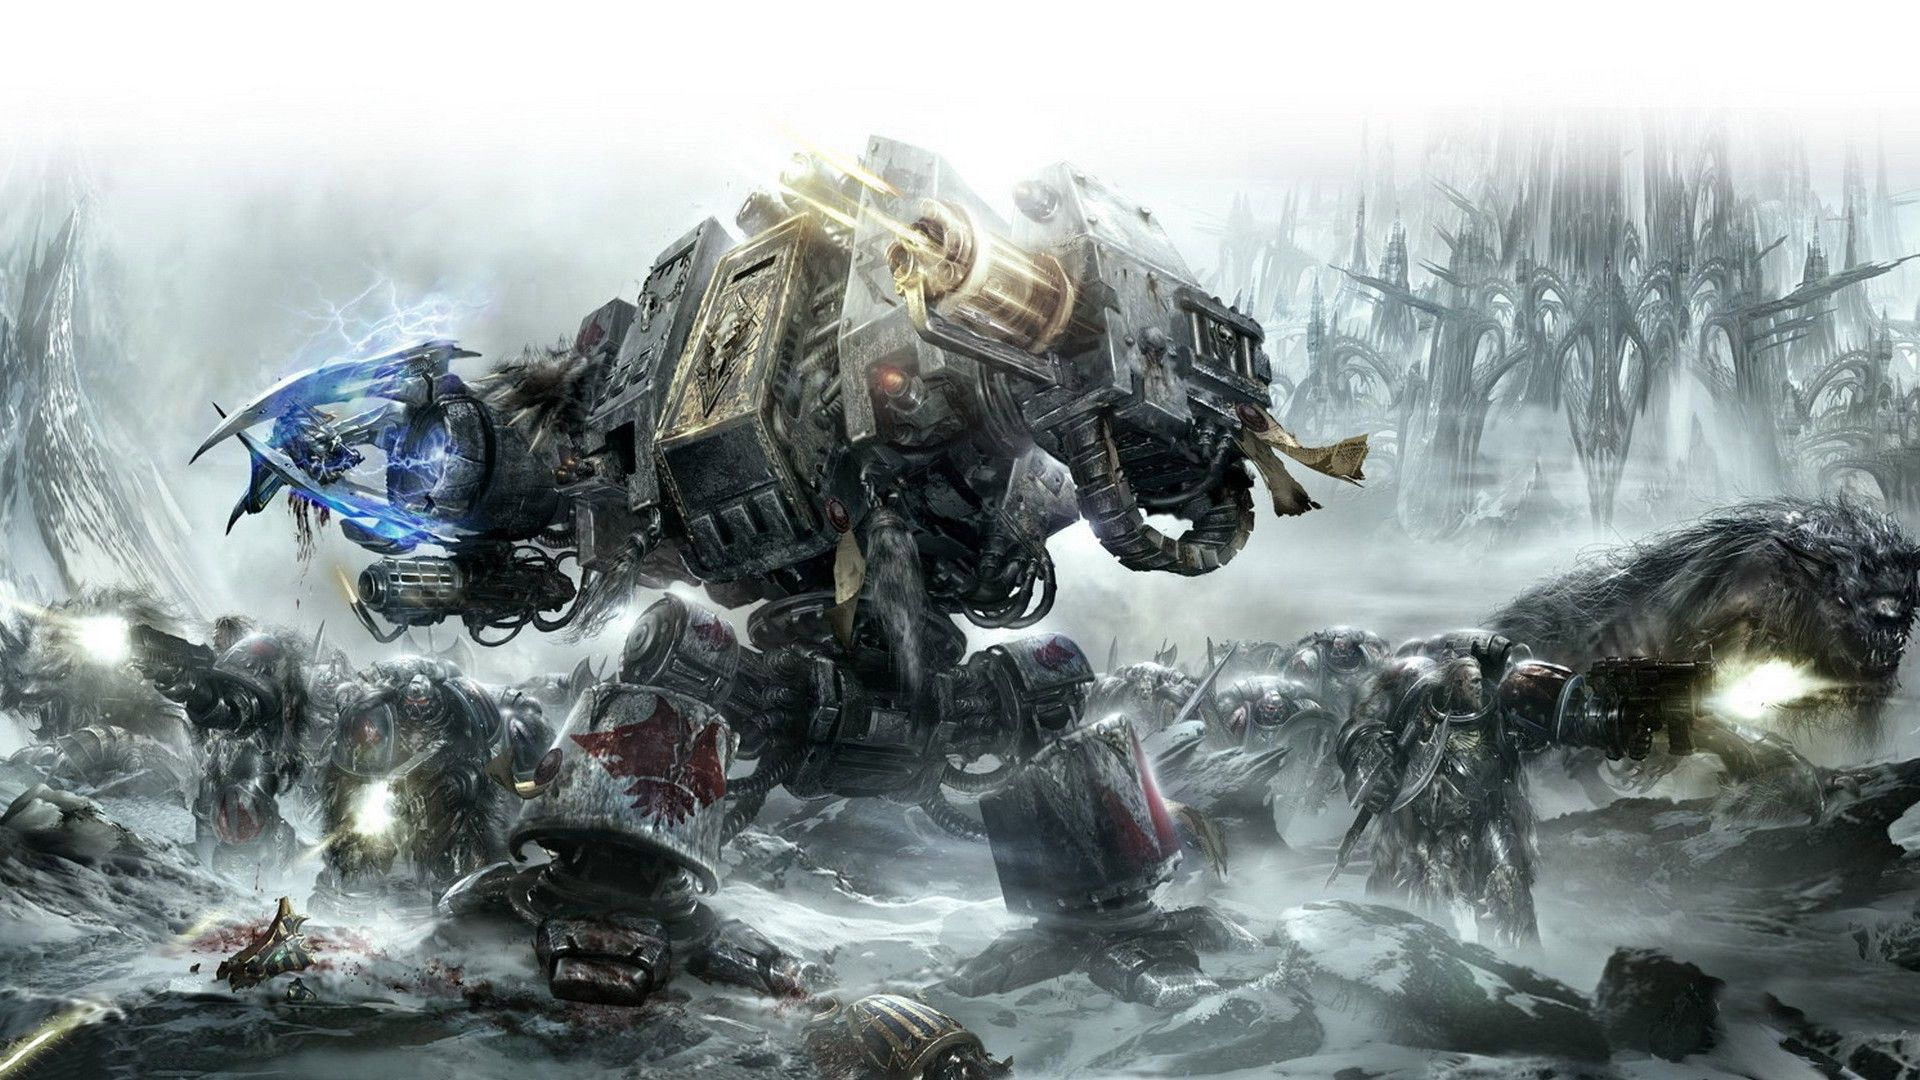 warhammer 40k hd wallpapers - wallpapersafari